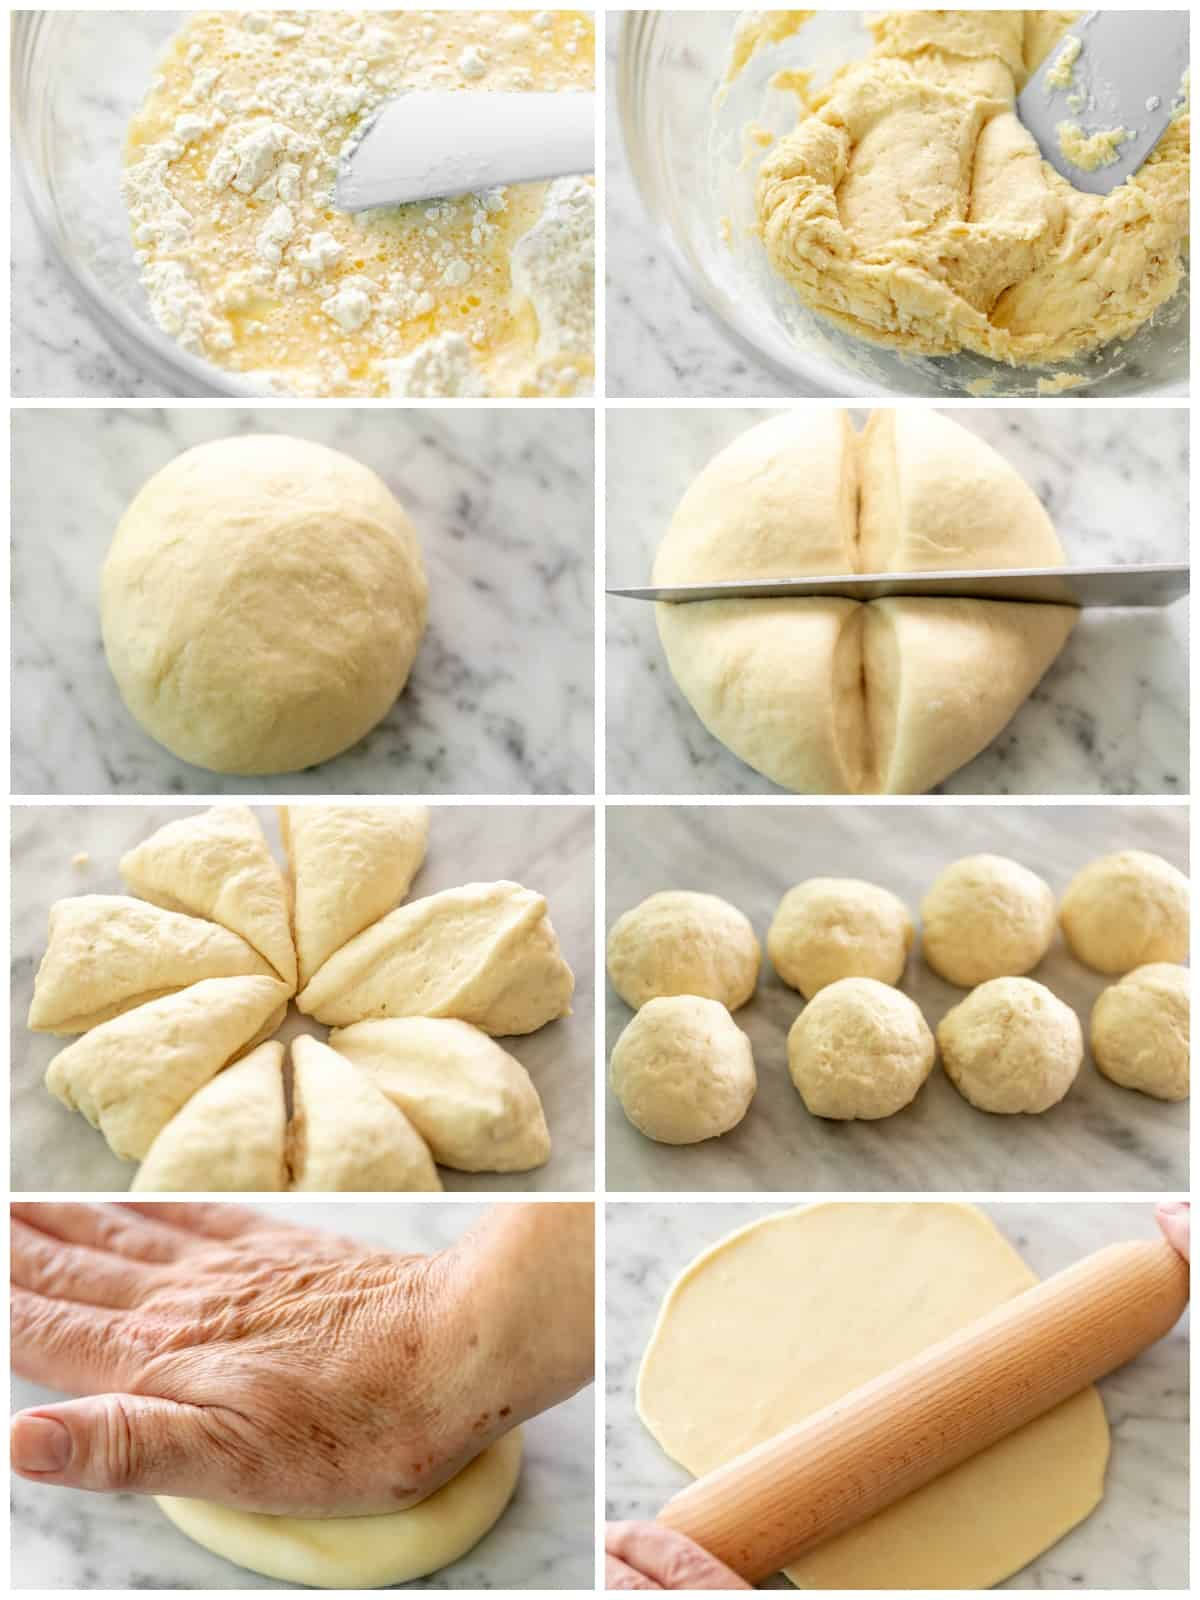 How to make flatbreads in a collage wth steps to make the dough and roll it out